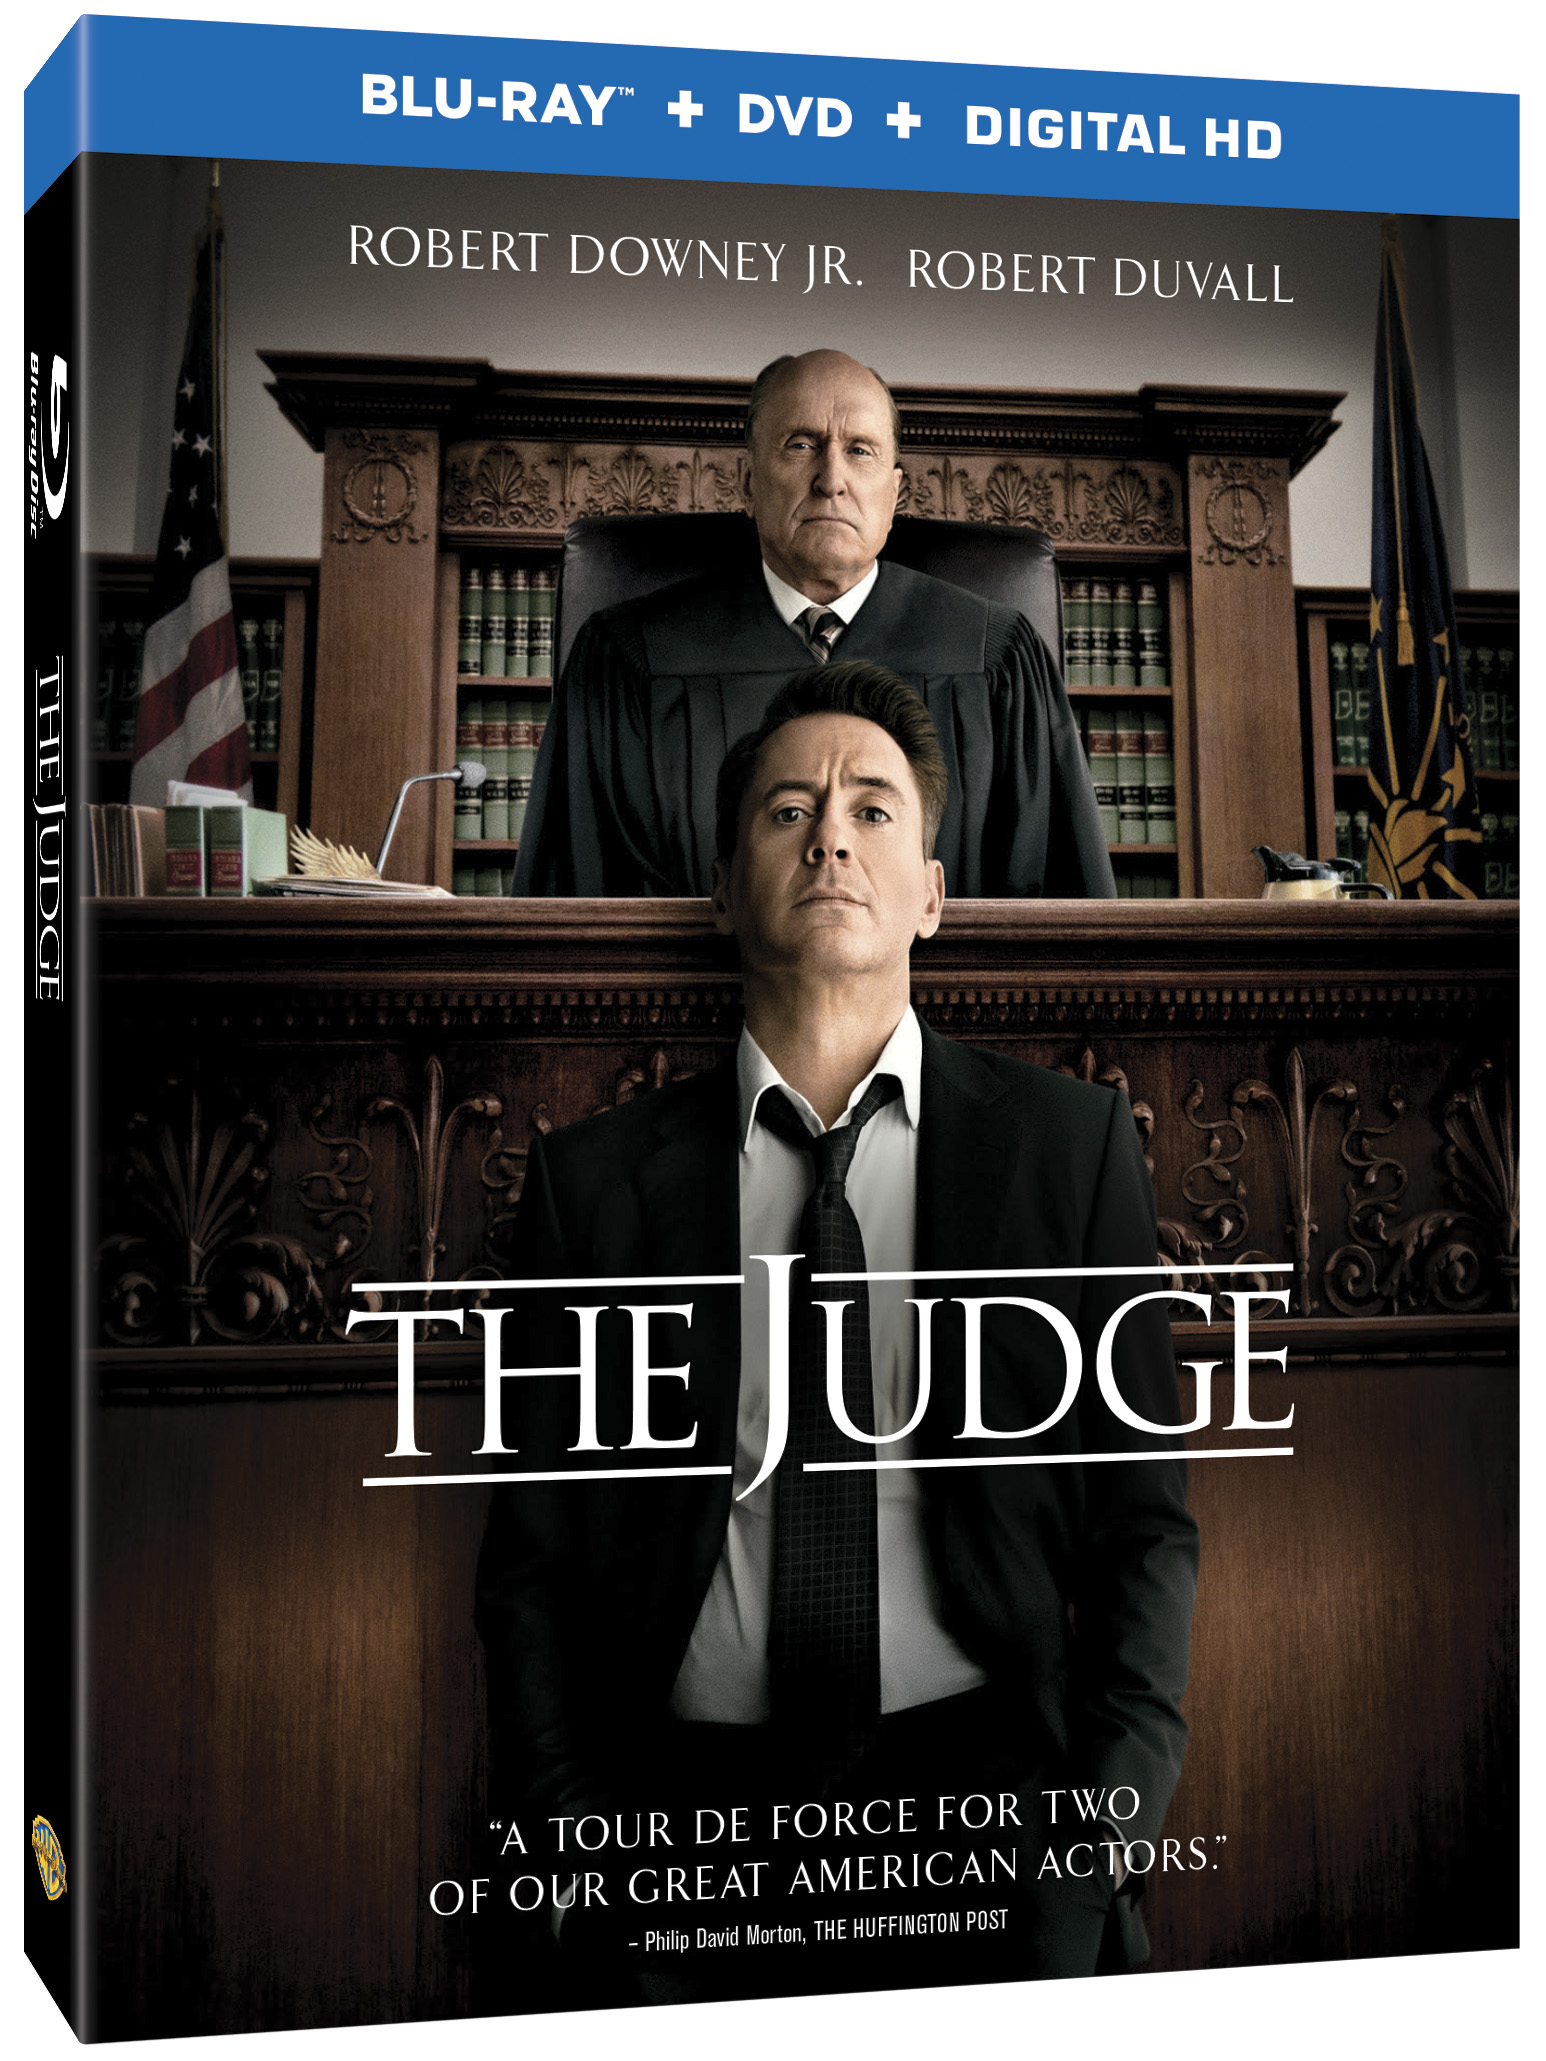 The Judge Blu-ray Review